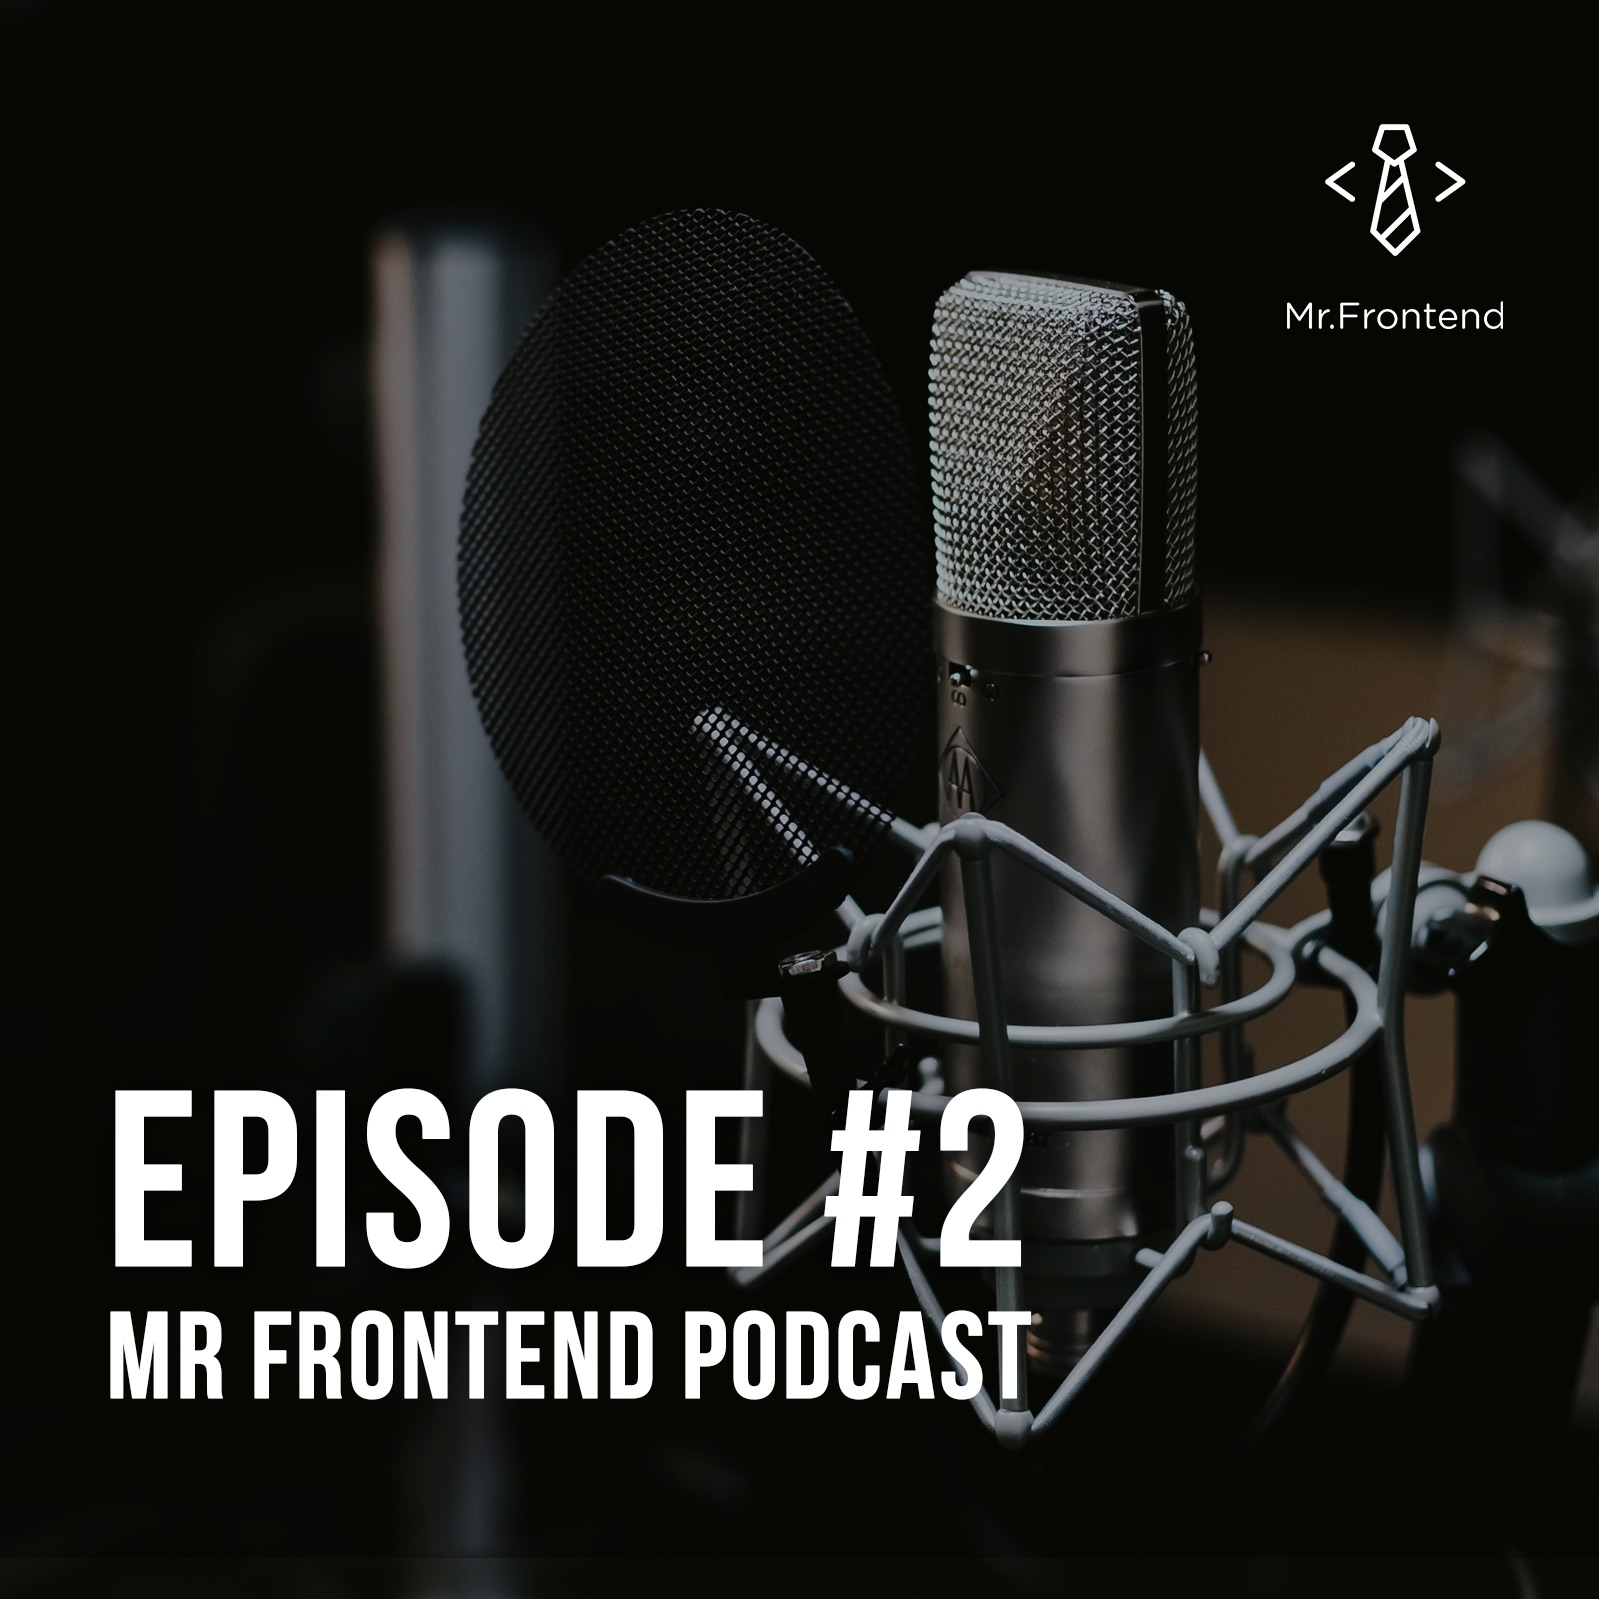 Mr Frontend - Podcast Episode #2